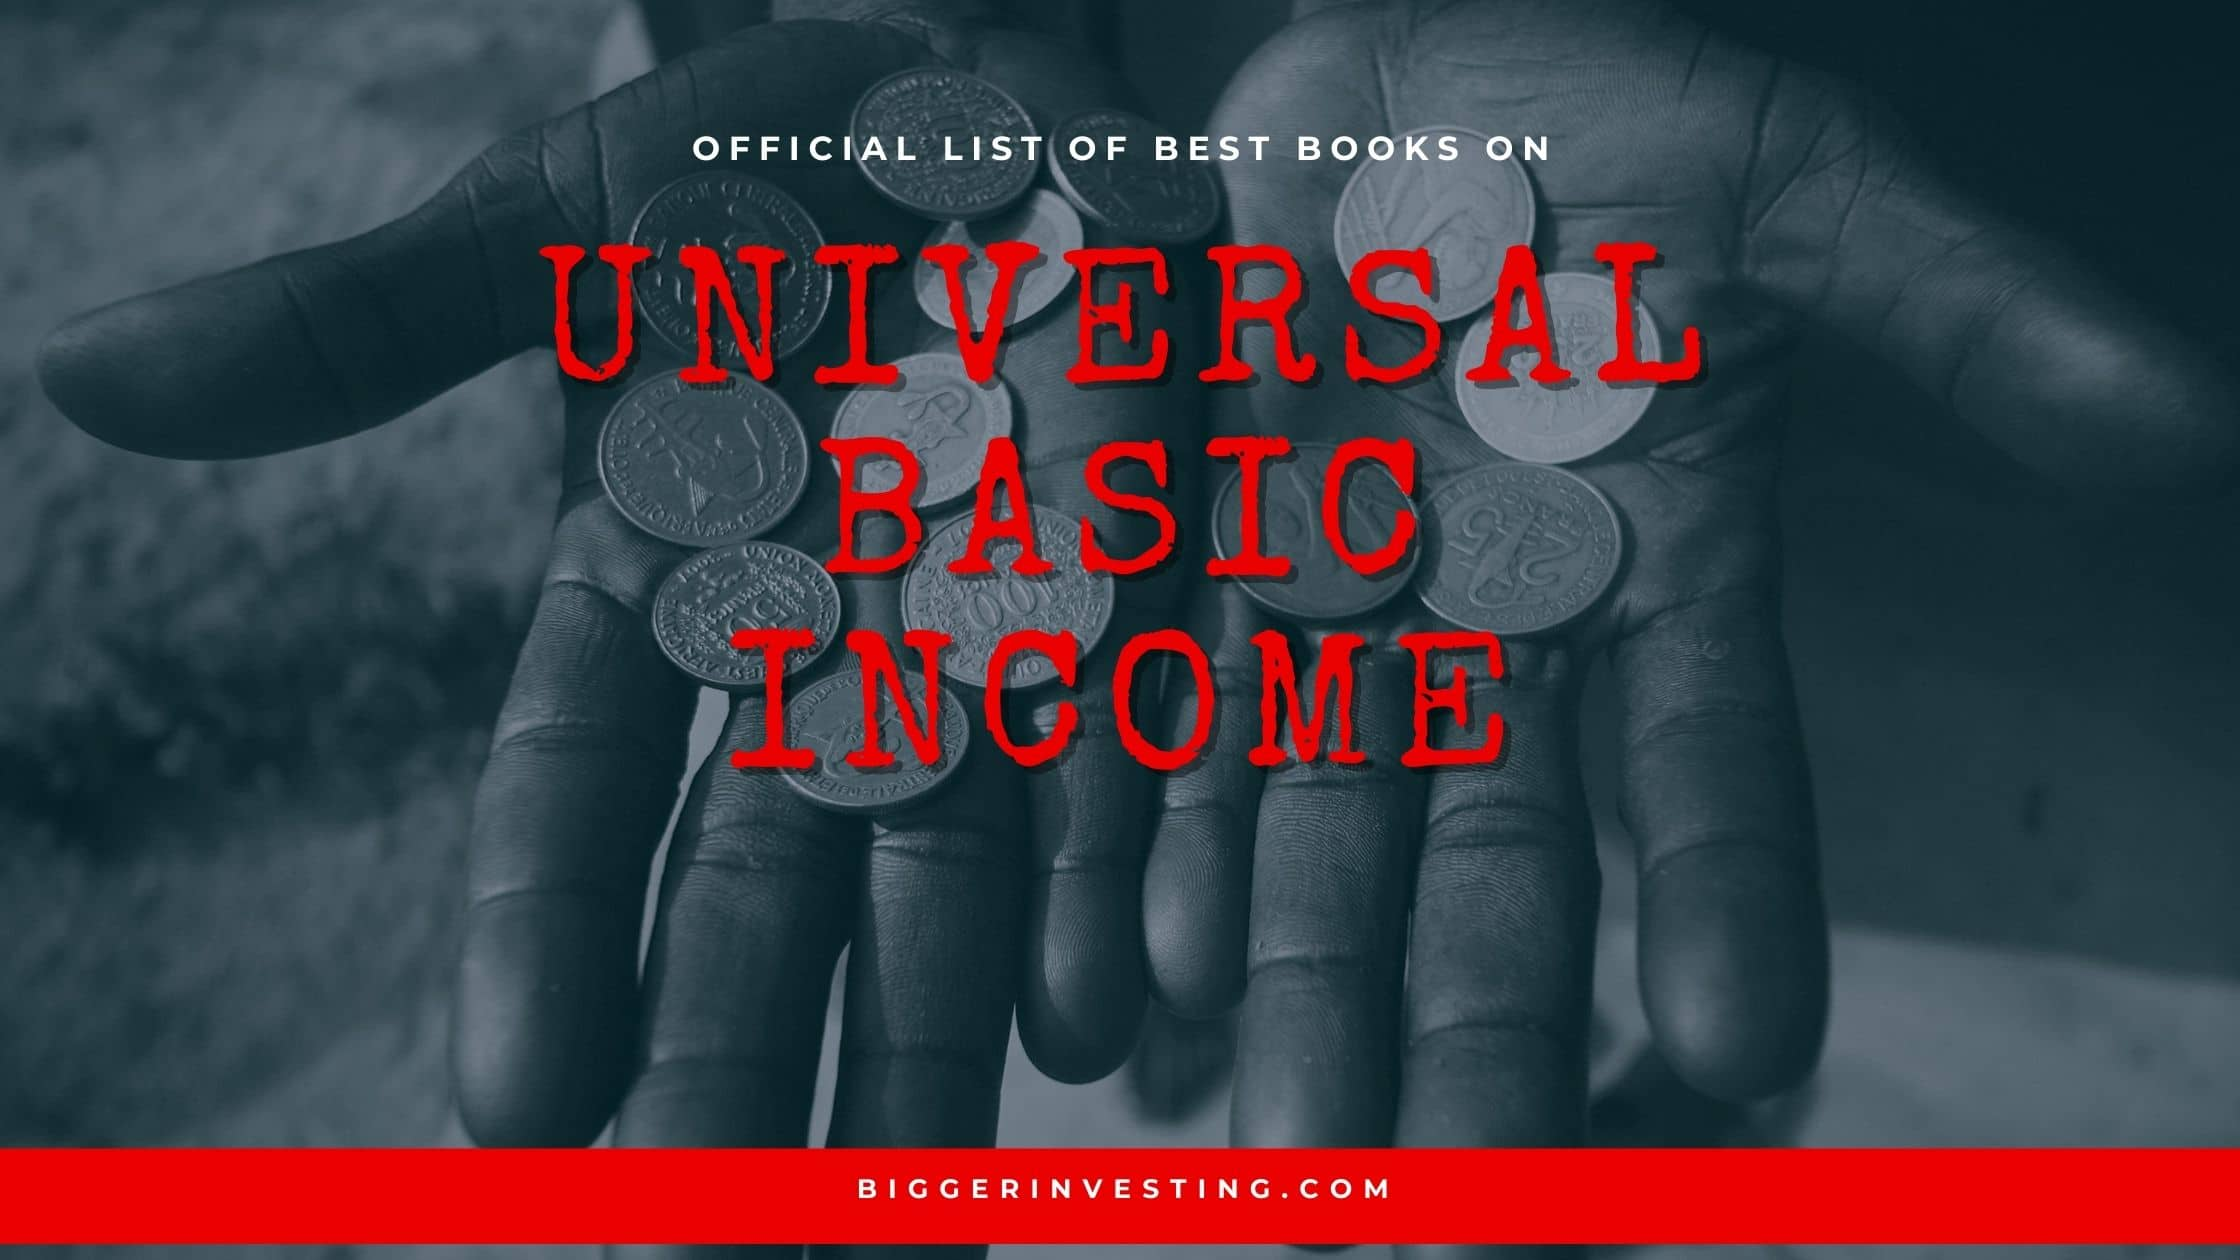 Best Books on Universal Basic Income